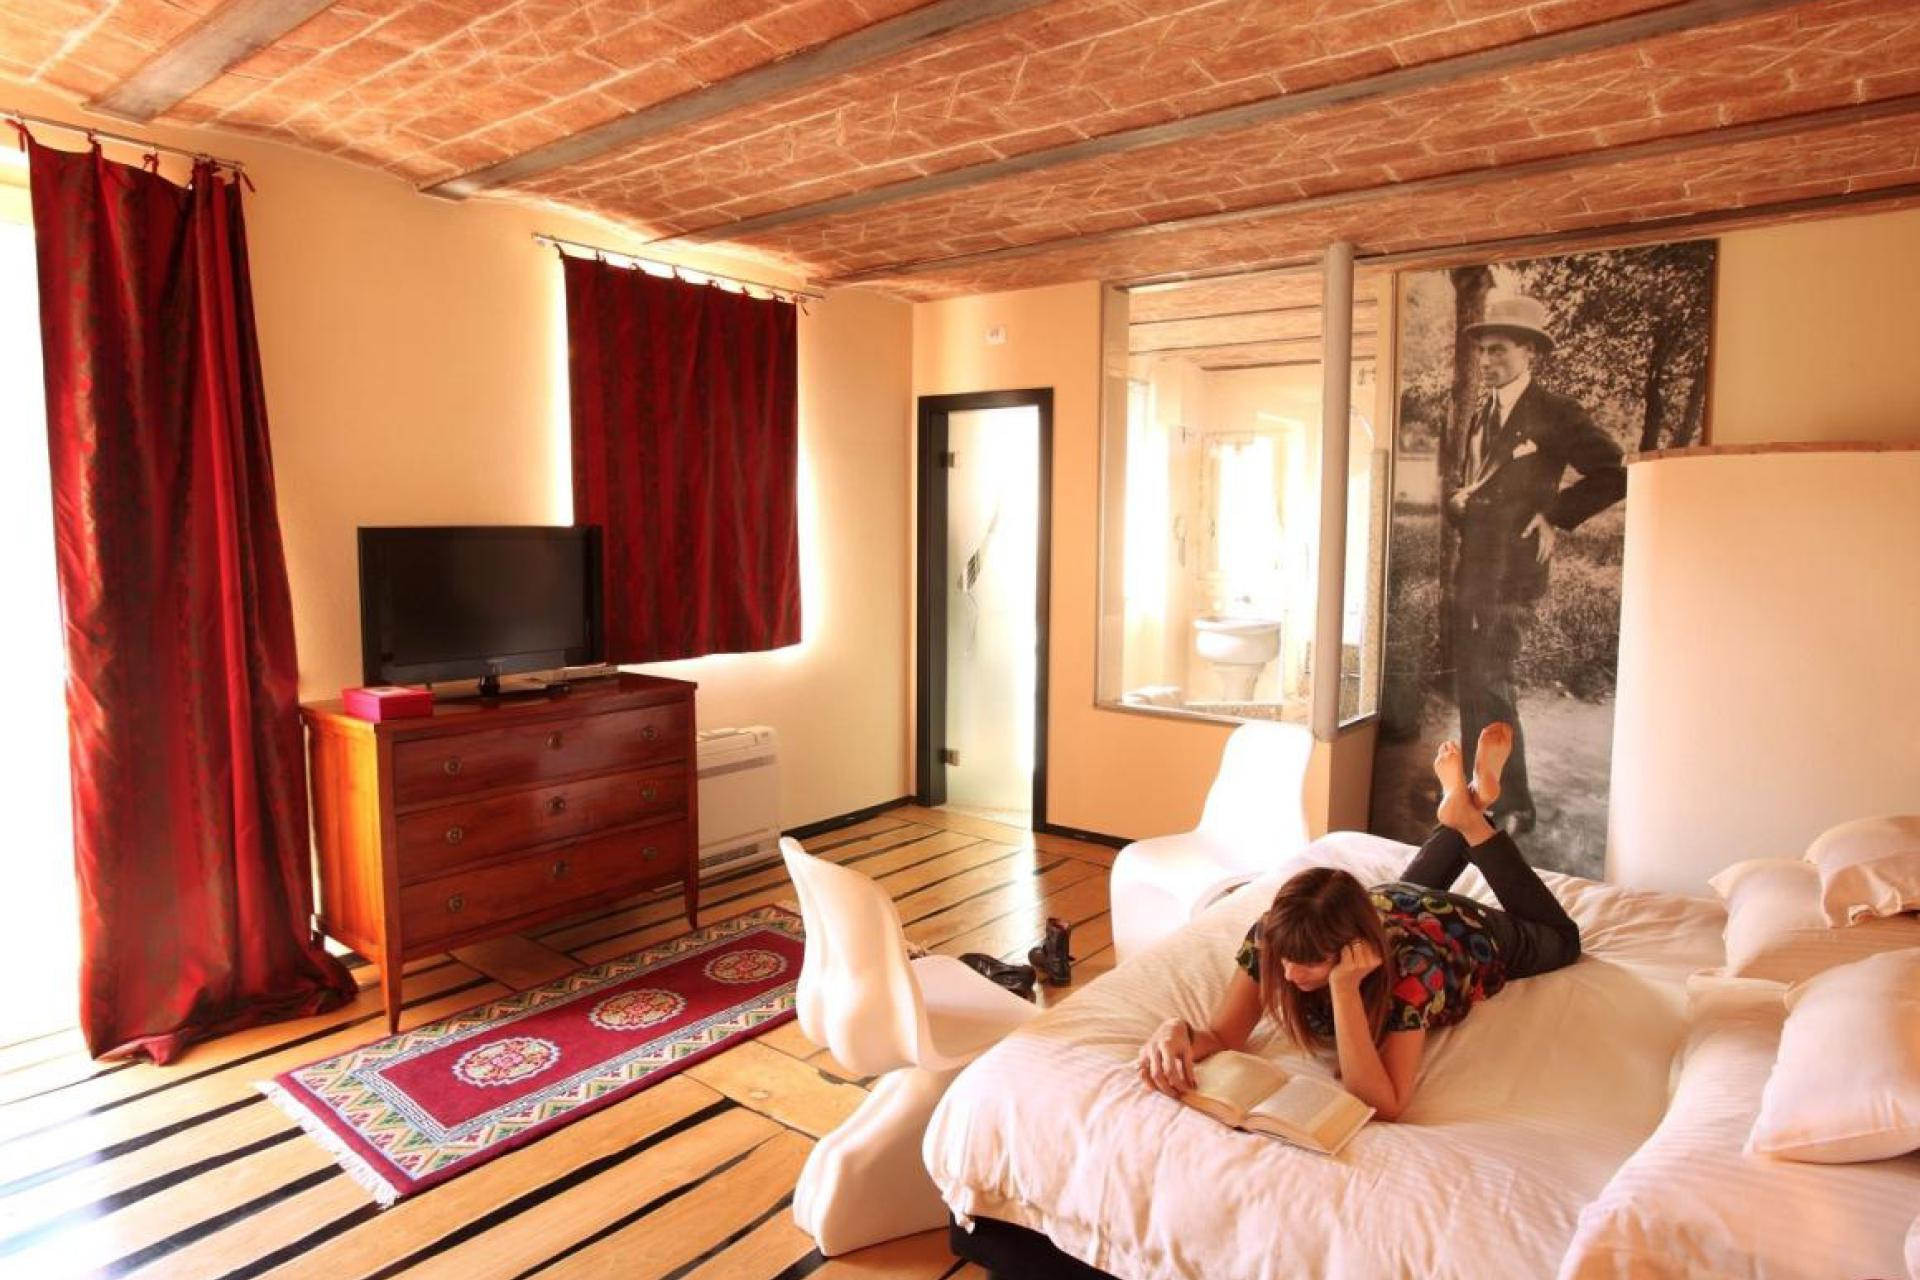 Agriturismo Tuscany Child-friendly and cozy agriturismo in Tuscany